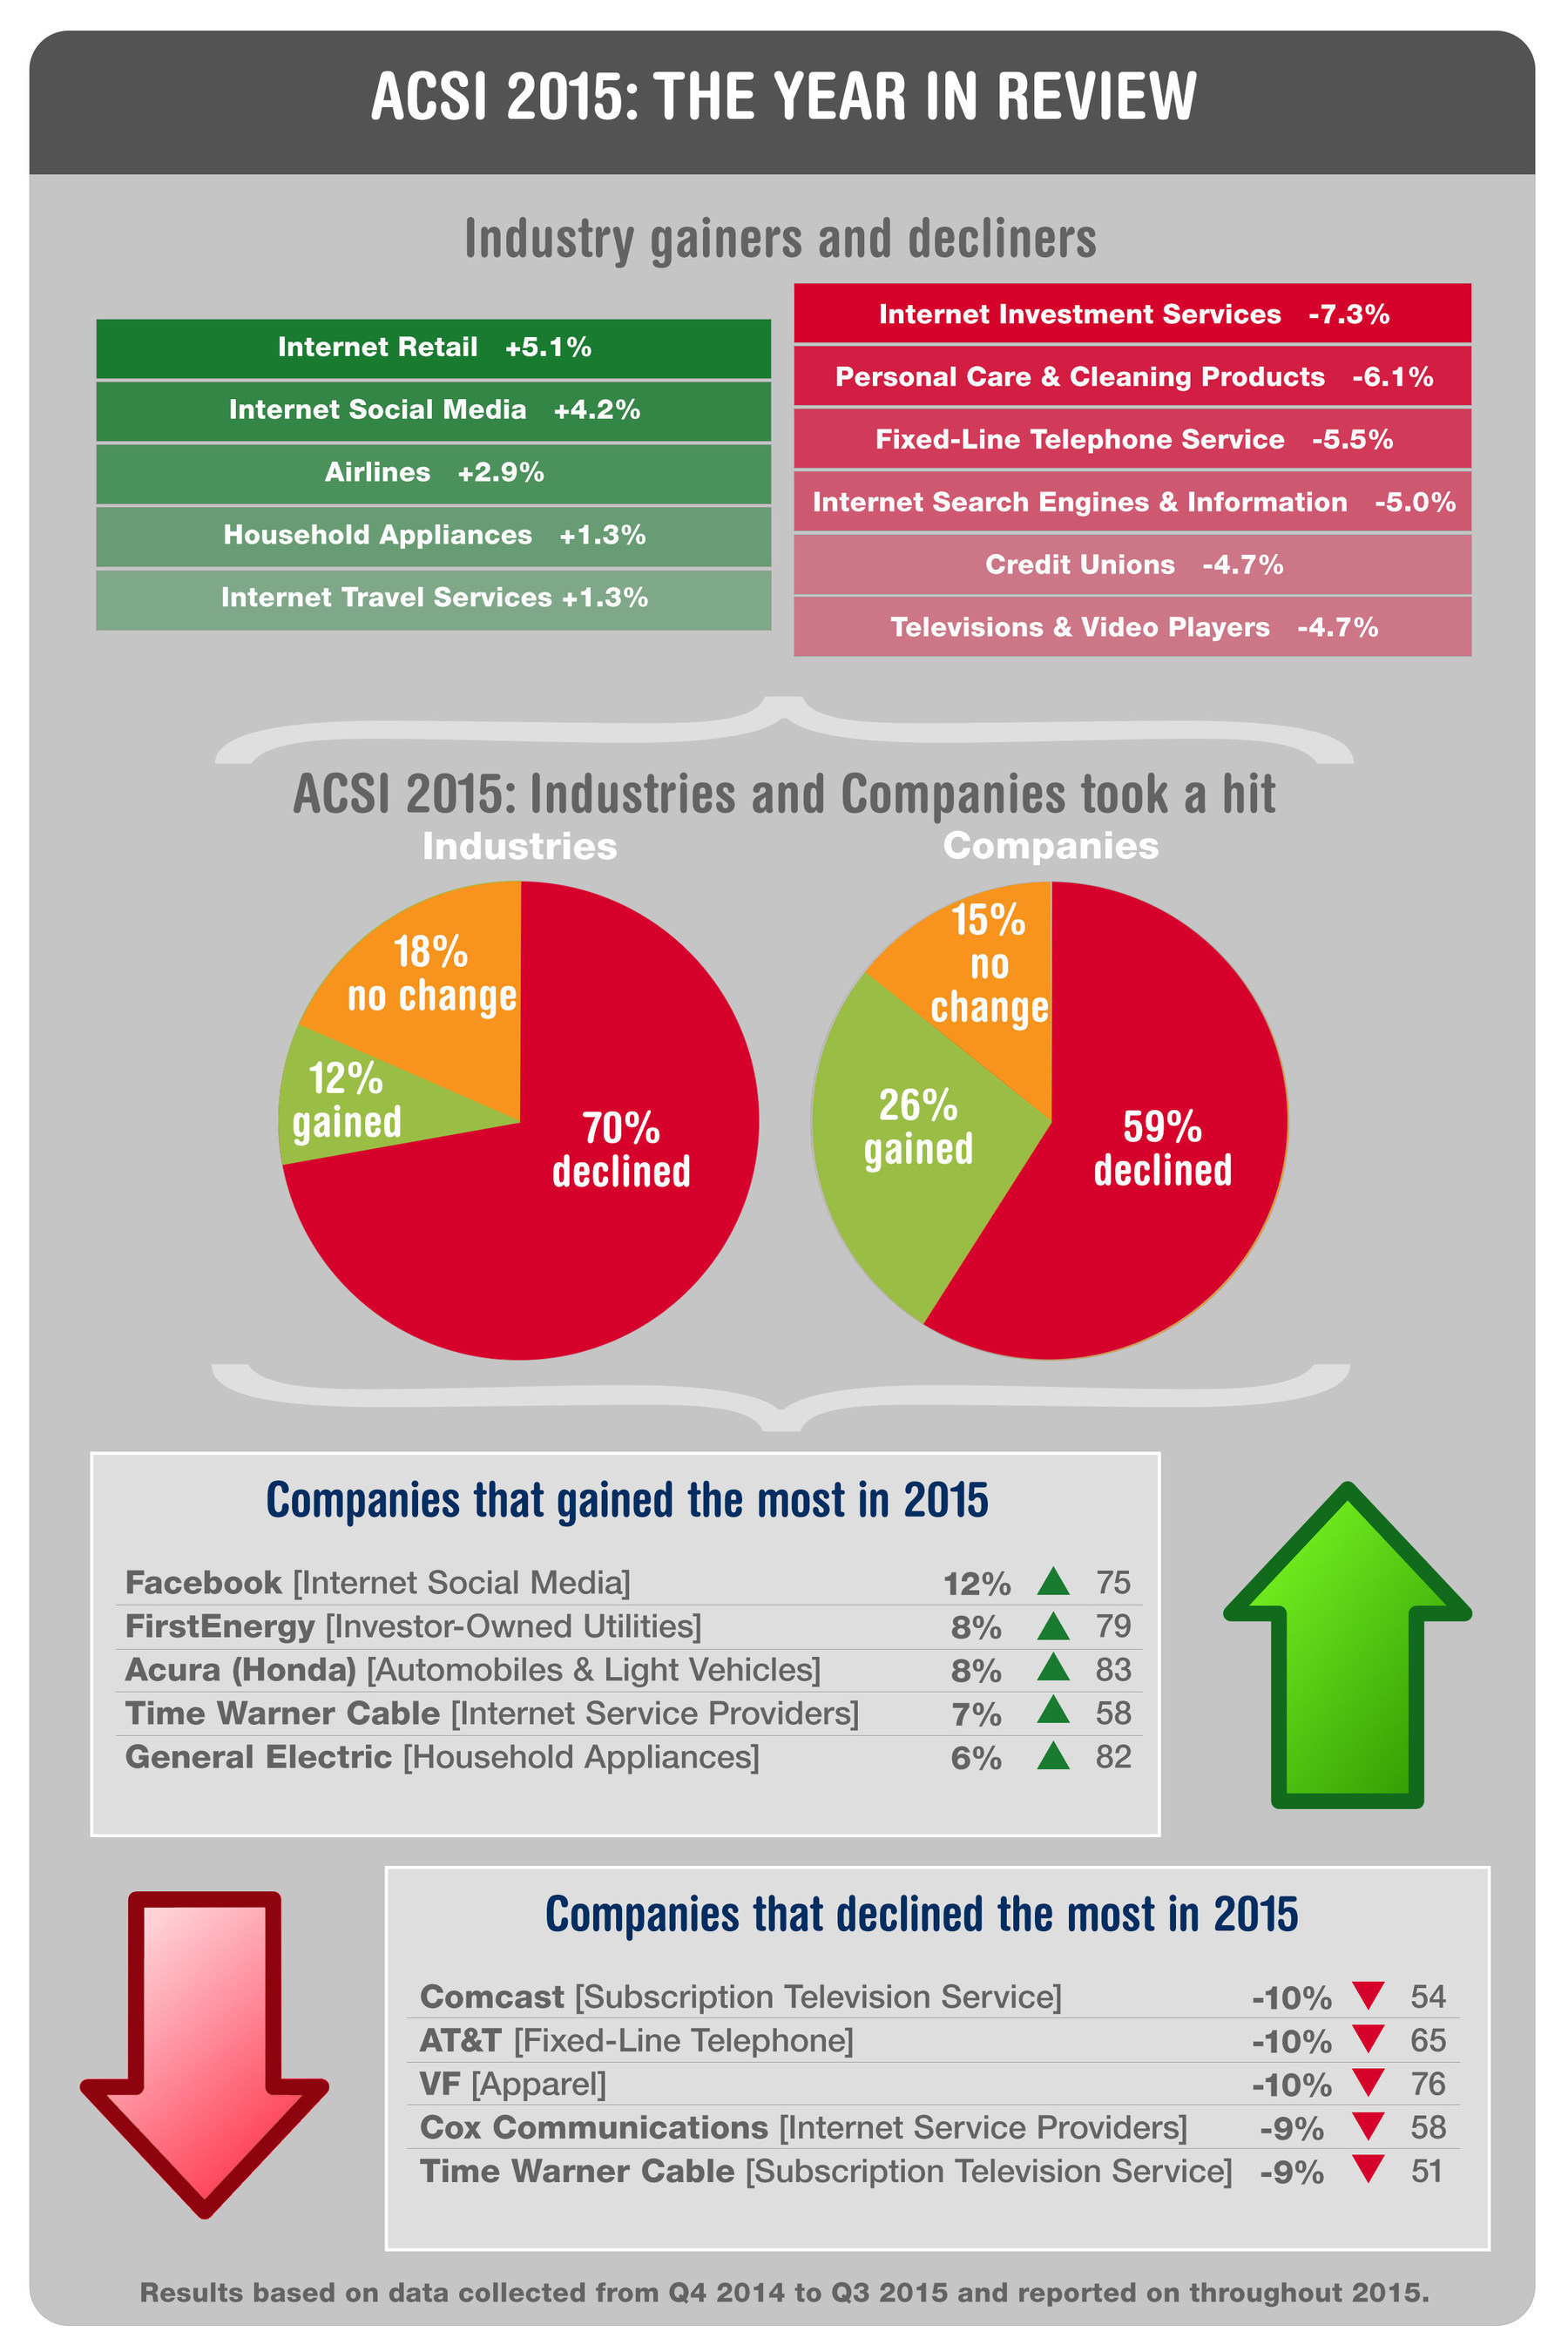 ACSI 2015: The Year In Review